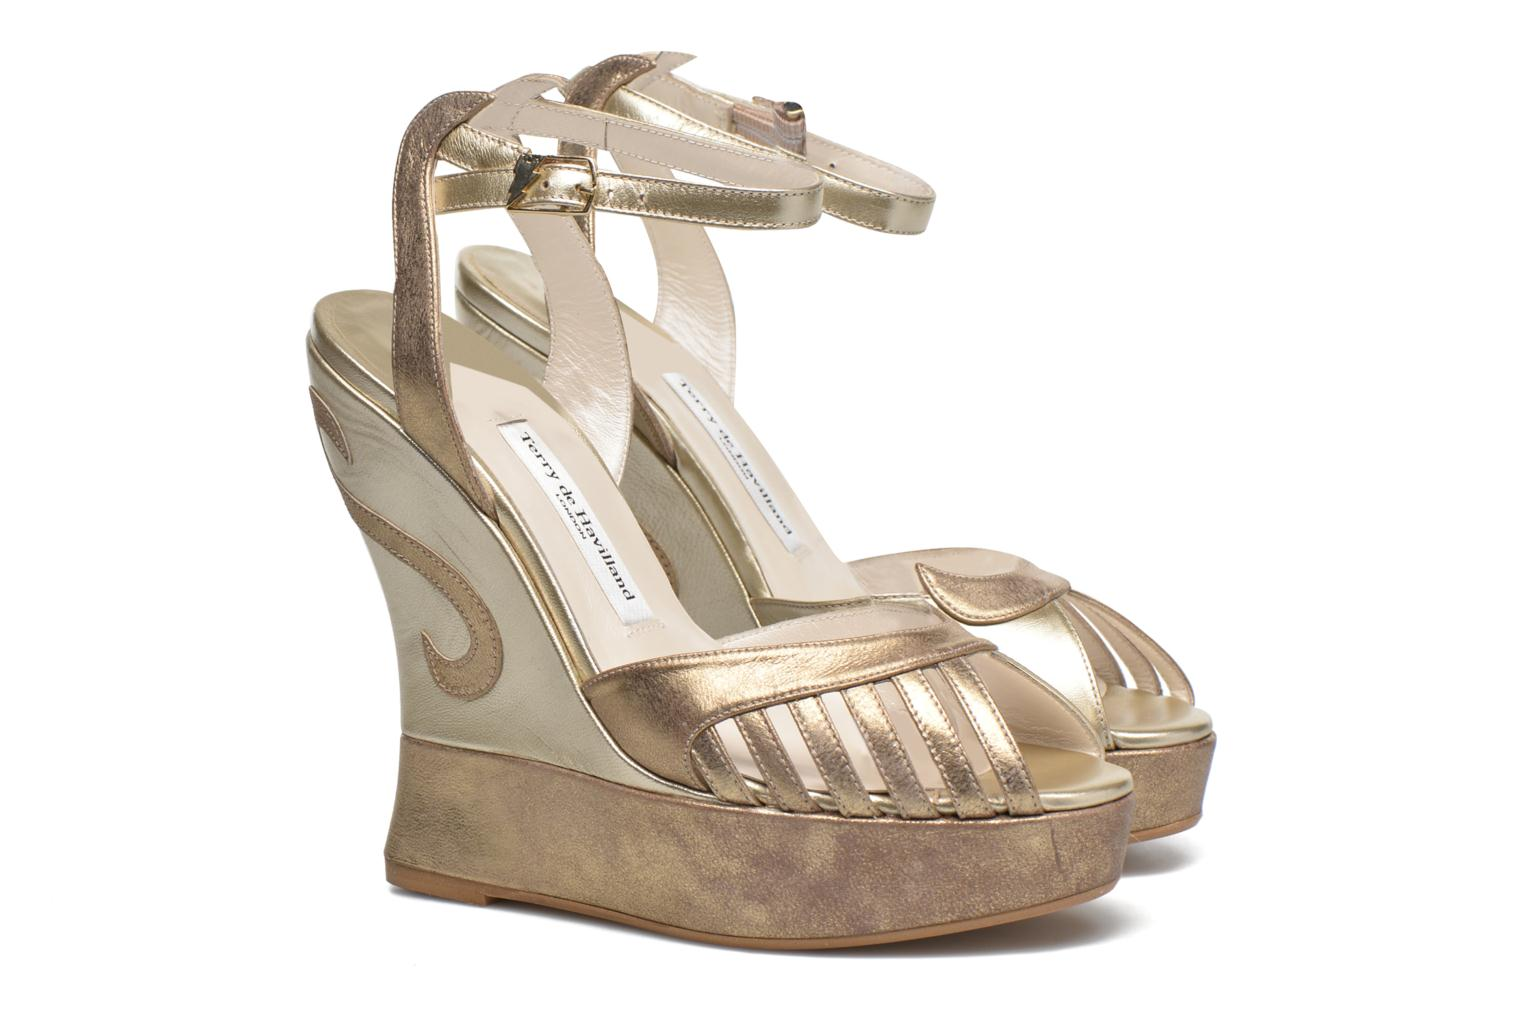 Sandalen Terry de Havilland Margaux gold/bronze 3 von 4 ansichten